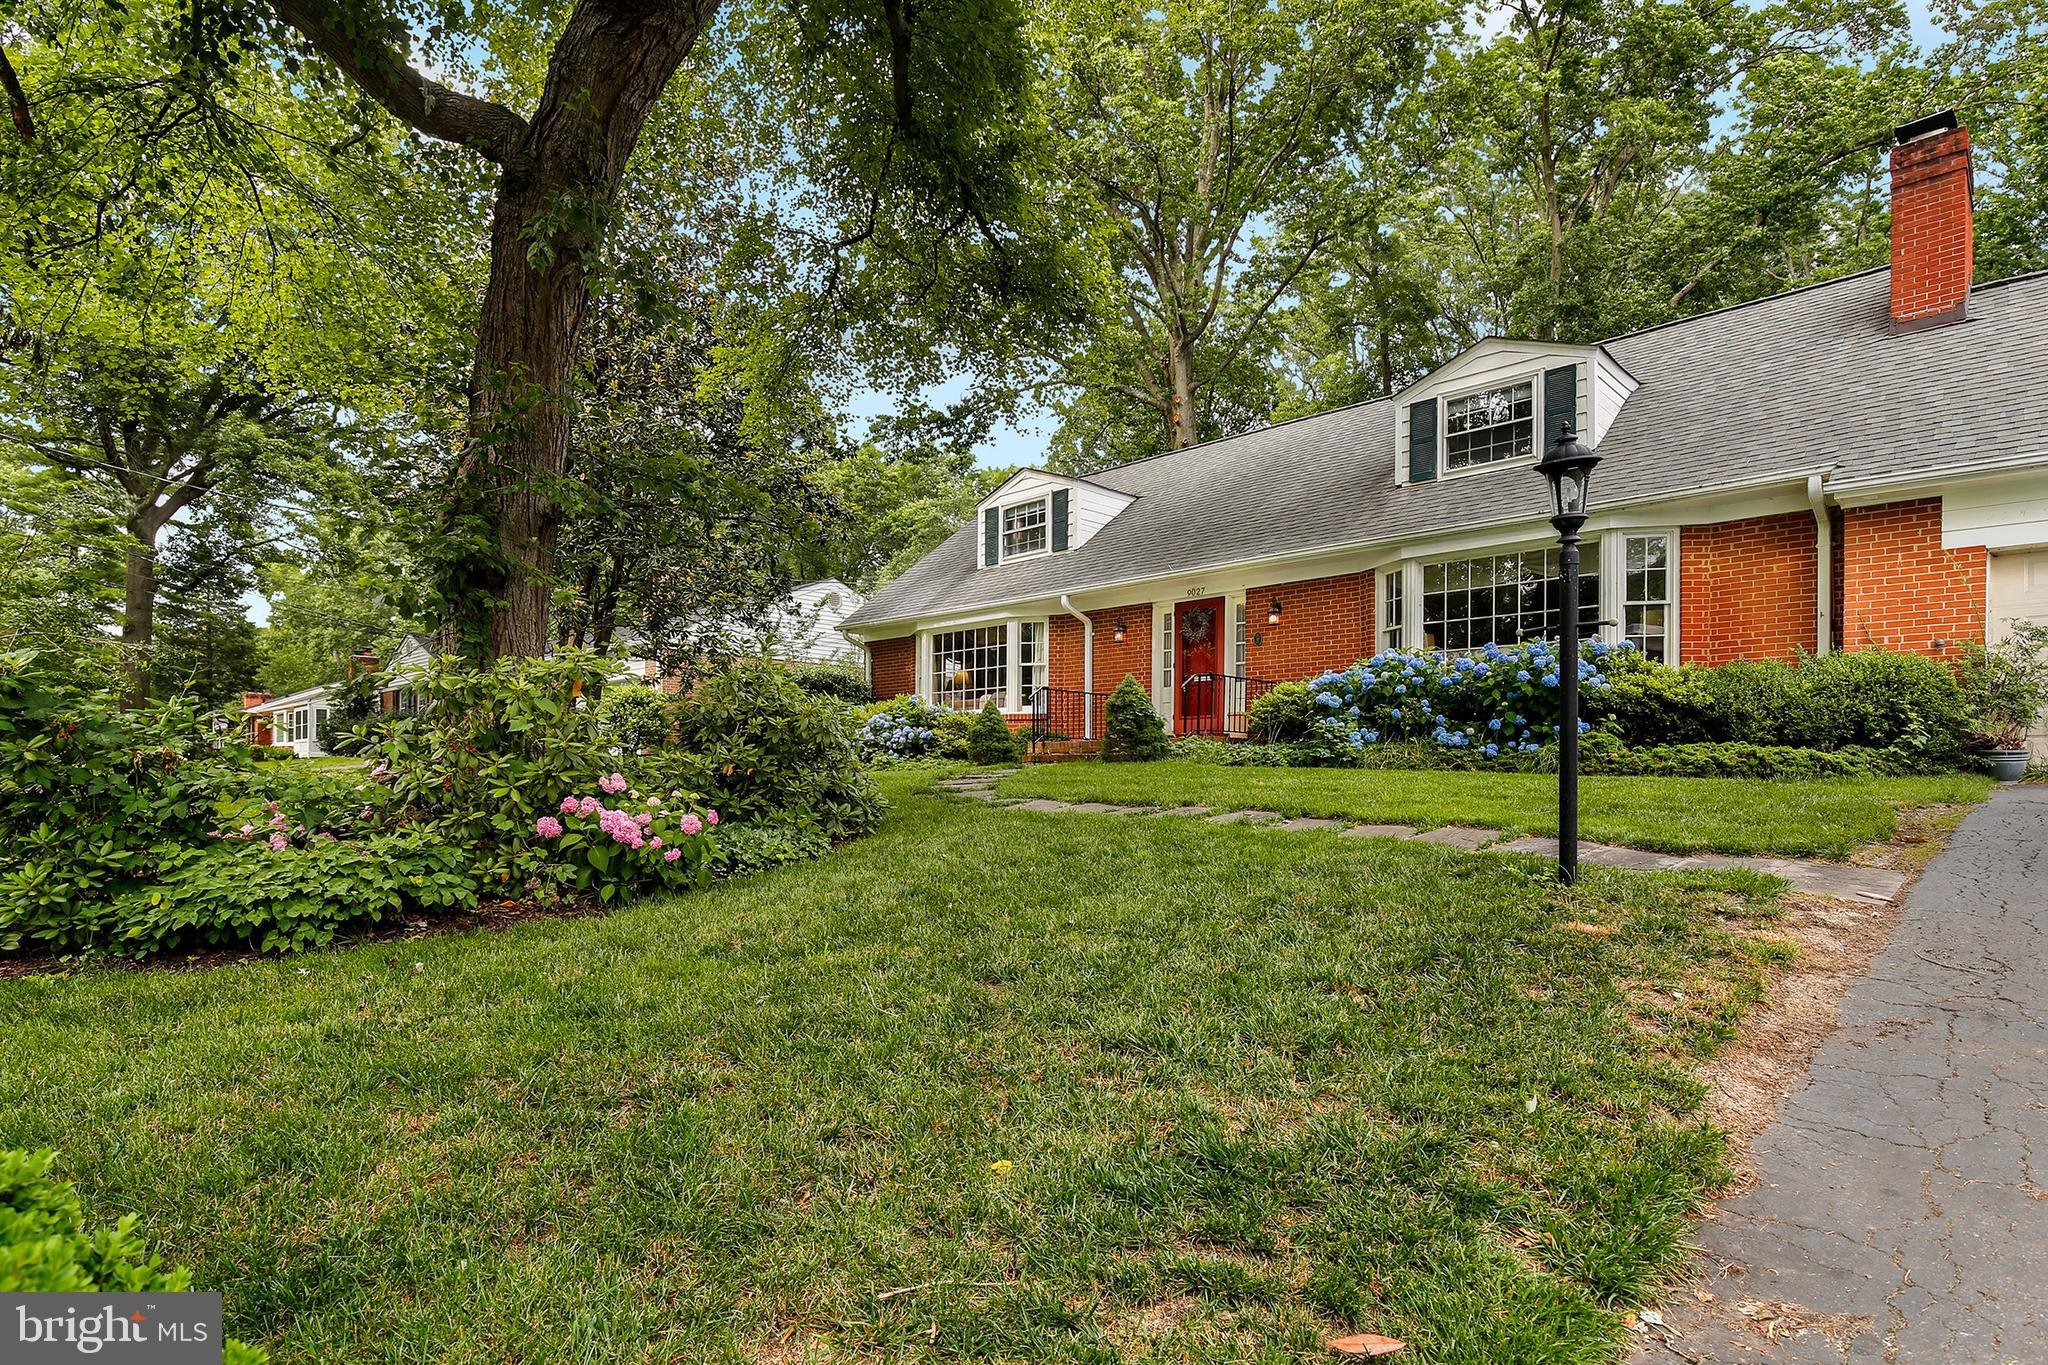 Motivated Seller! Excellent NEW PRICE for this elegant New England style Cape Cod tucked away on a quiet street in River Bend Estates! Own this timeless masterpiece close to the Potomac river and Mt. Vernon trail. Hardwood floors throughout the 1st & 2nd levels. Formal living room, dining room and family room with crown moldings. Beautiful bay windows on ML. Updated eat-in kitchen with granite, SS apps, built-in microwave, gas stove, tile floors and custom cabinetry with wine rack. Screened-in sunroom. ML bedroom with full bathroom great for 1st floor living or in-laws! The upper level features two generous sized bedrooms with full bath in hallway. Spacious master suite features three closets; one is a cedar closet. MBA features glass enclosed shower & dual vanities. LL features bedroom and full bathroom w/ washer & dryer in utility room.